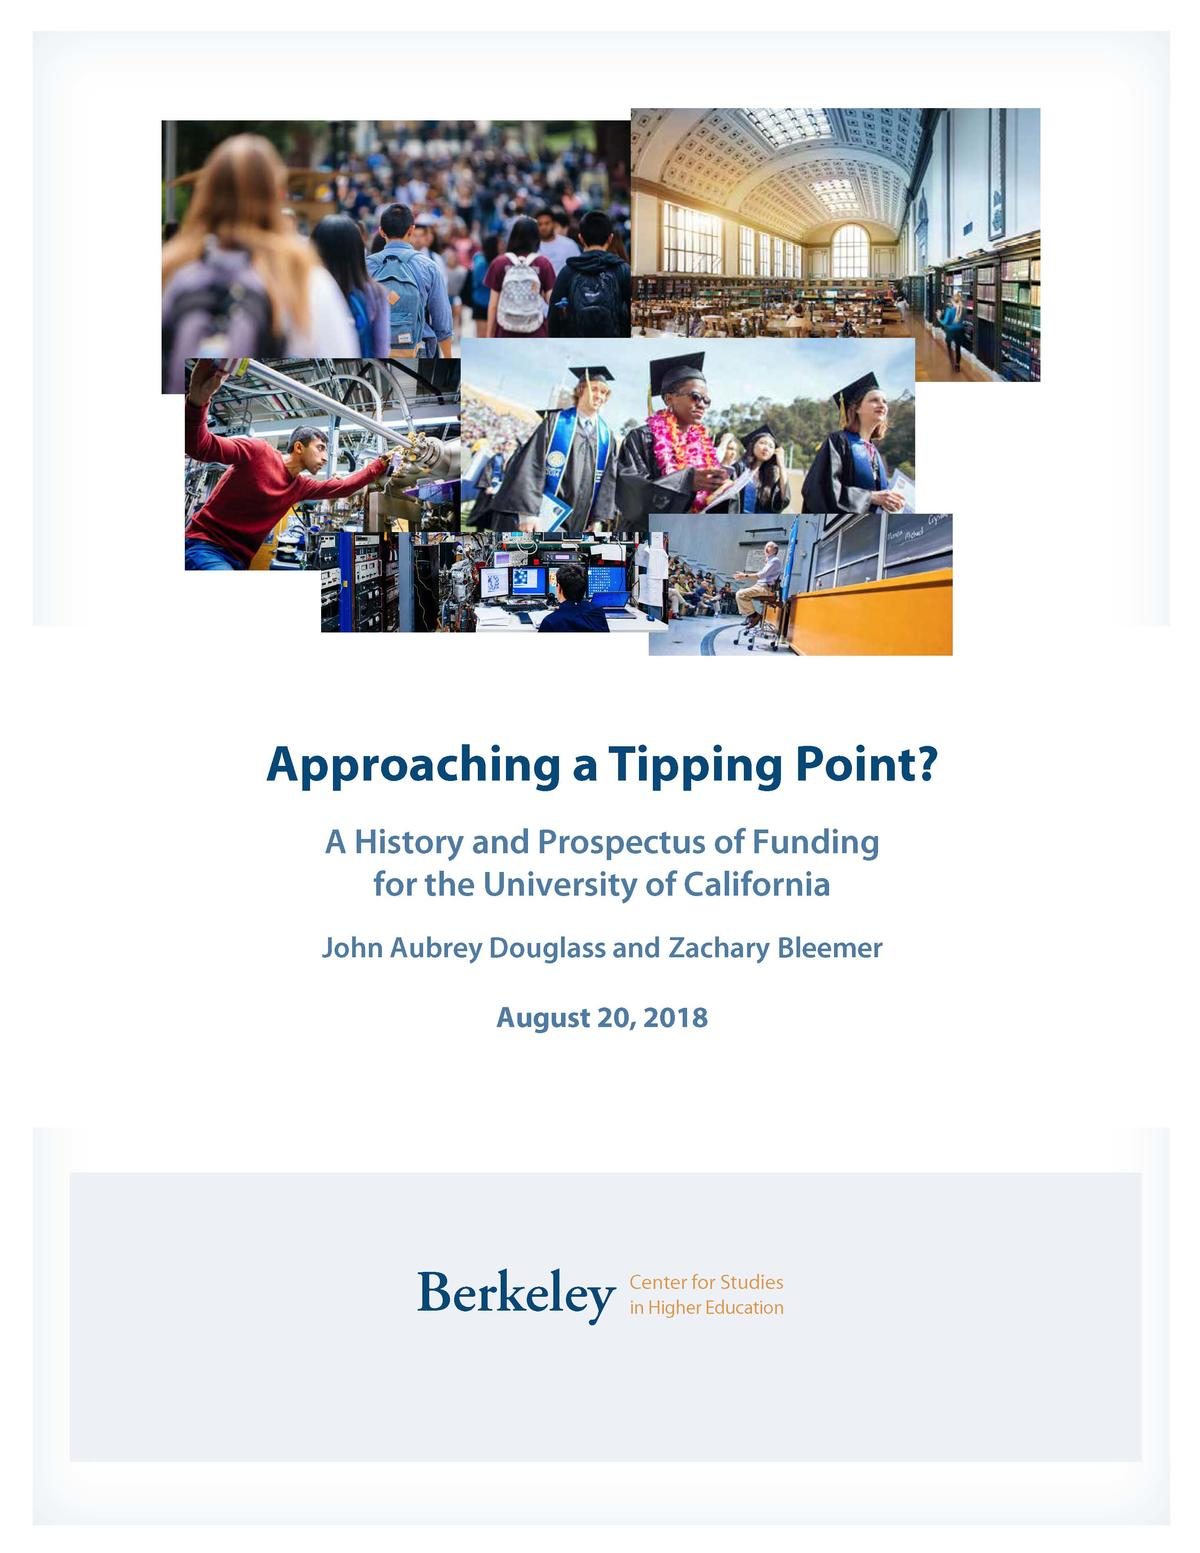 Approaching a Tipping Point Report Cover